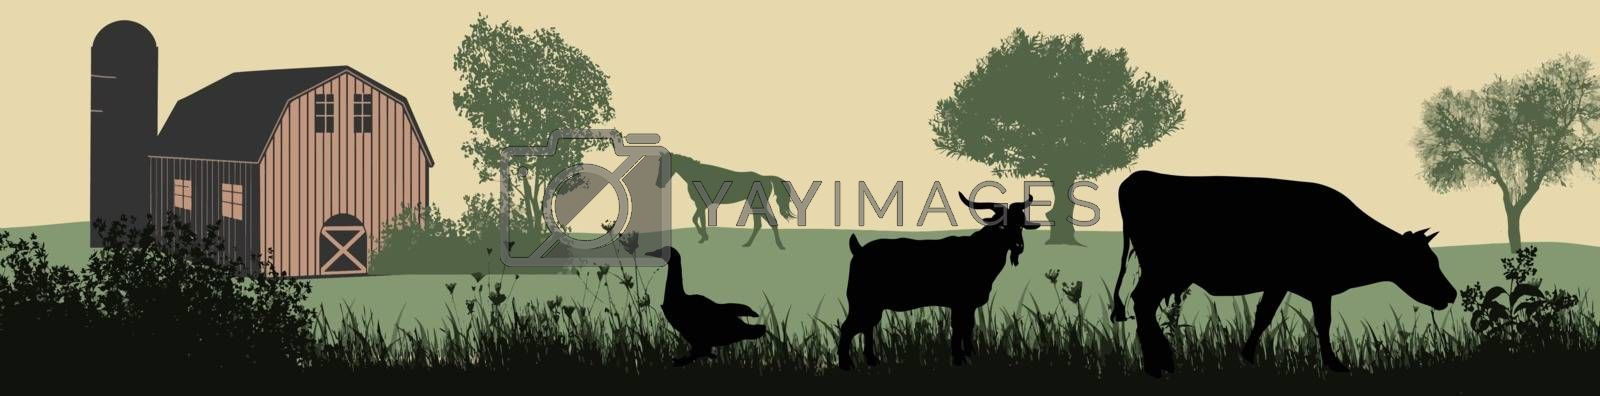 Farm animals silhouette on beautiful rural landscape, vector illustration